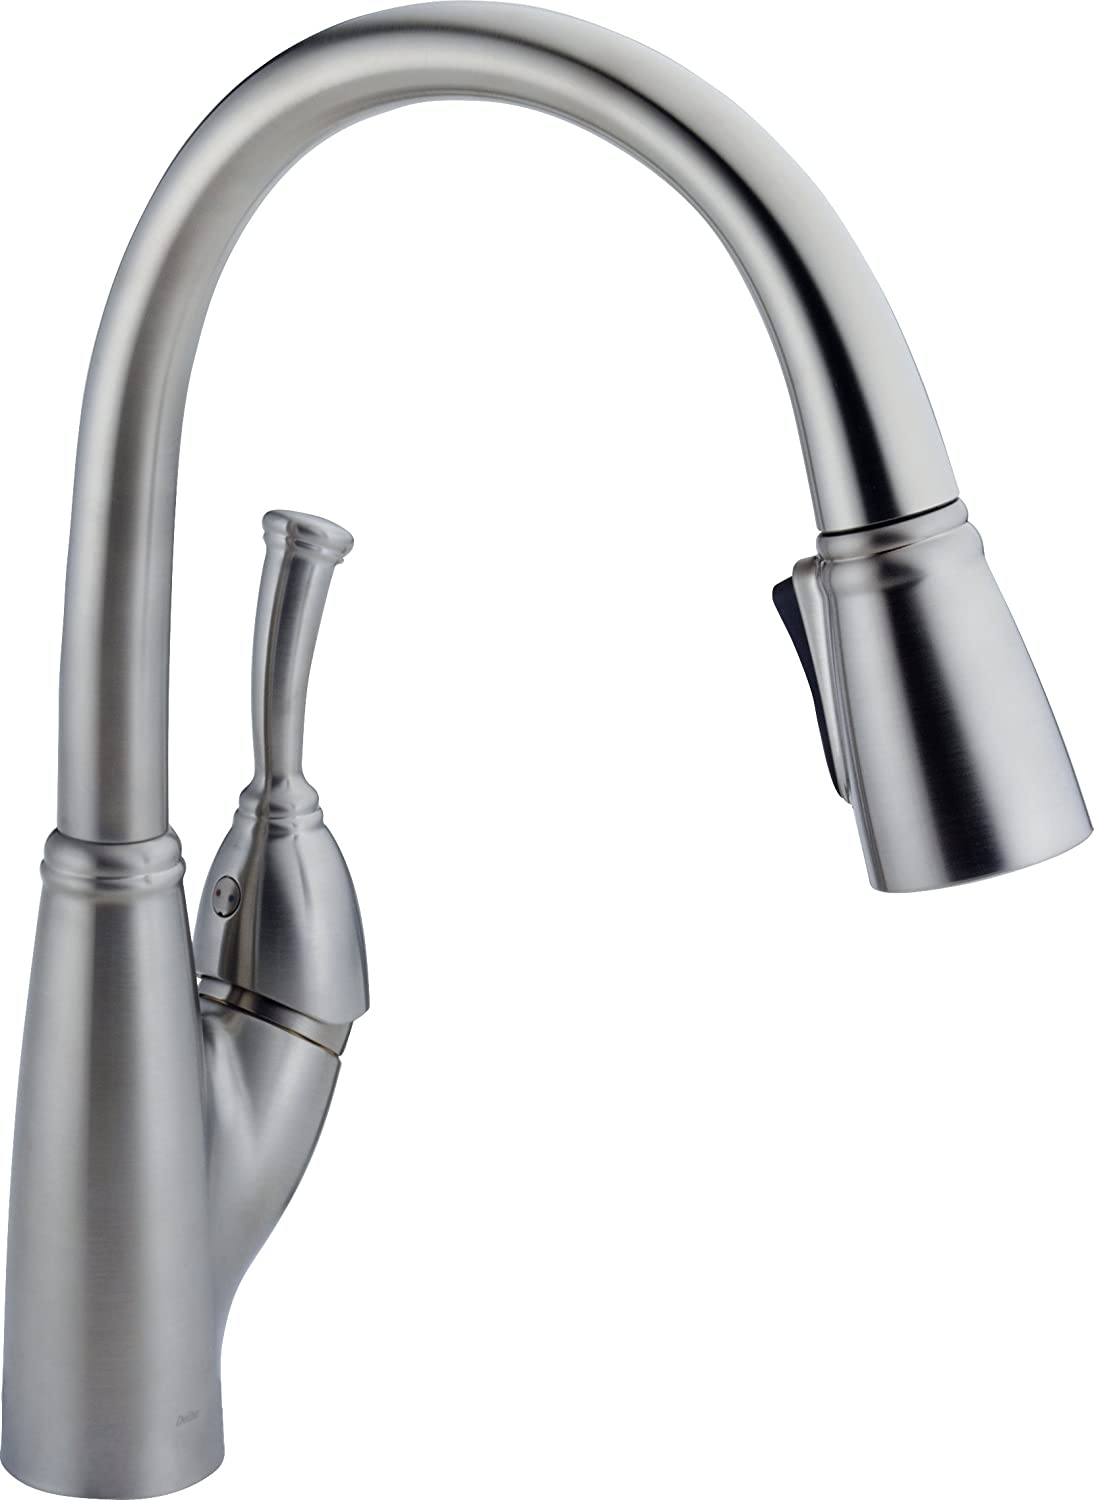 pull down kitchen faucet reviews shoes womens best faucets 2016 out